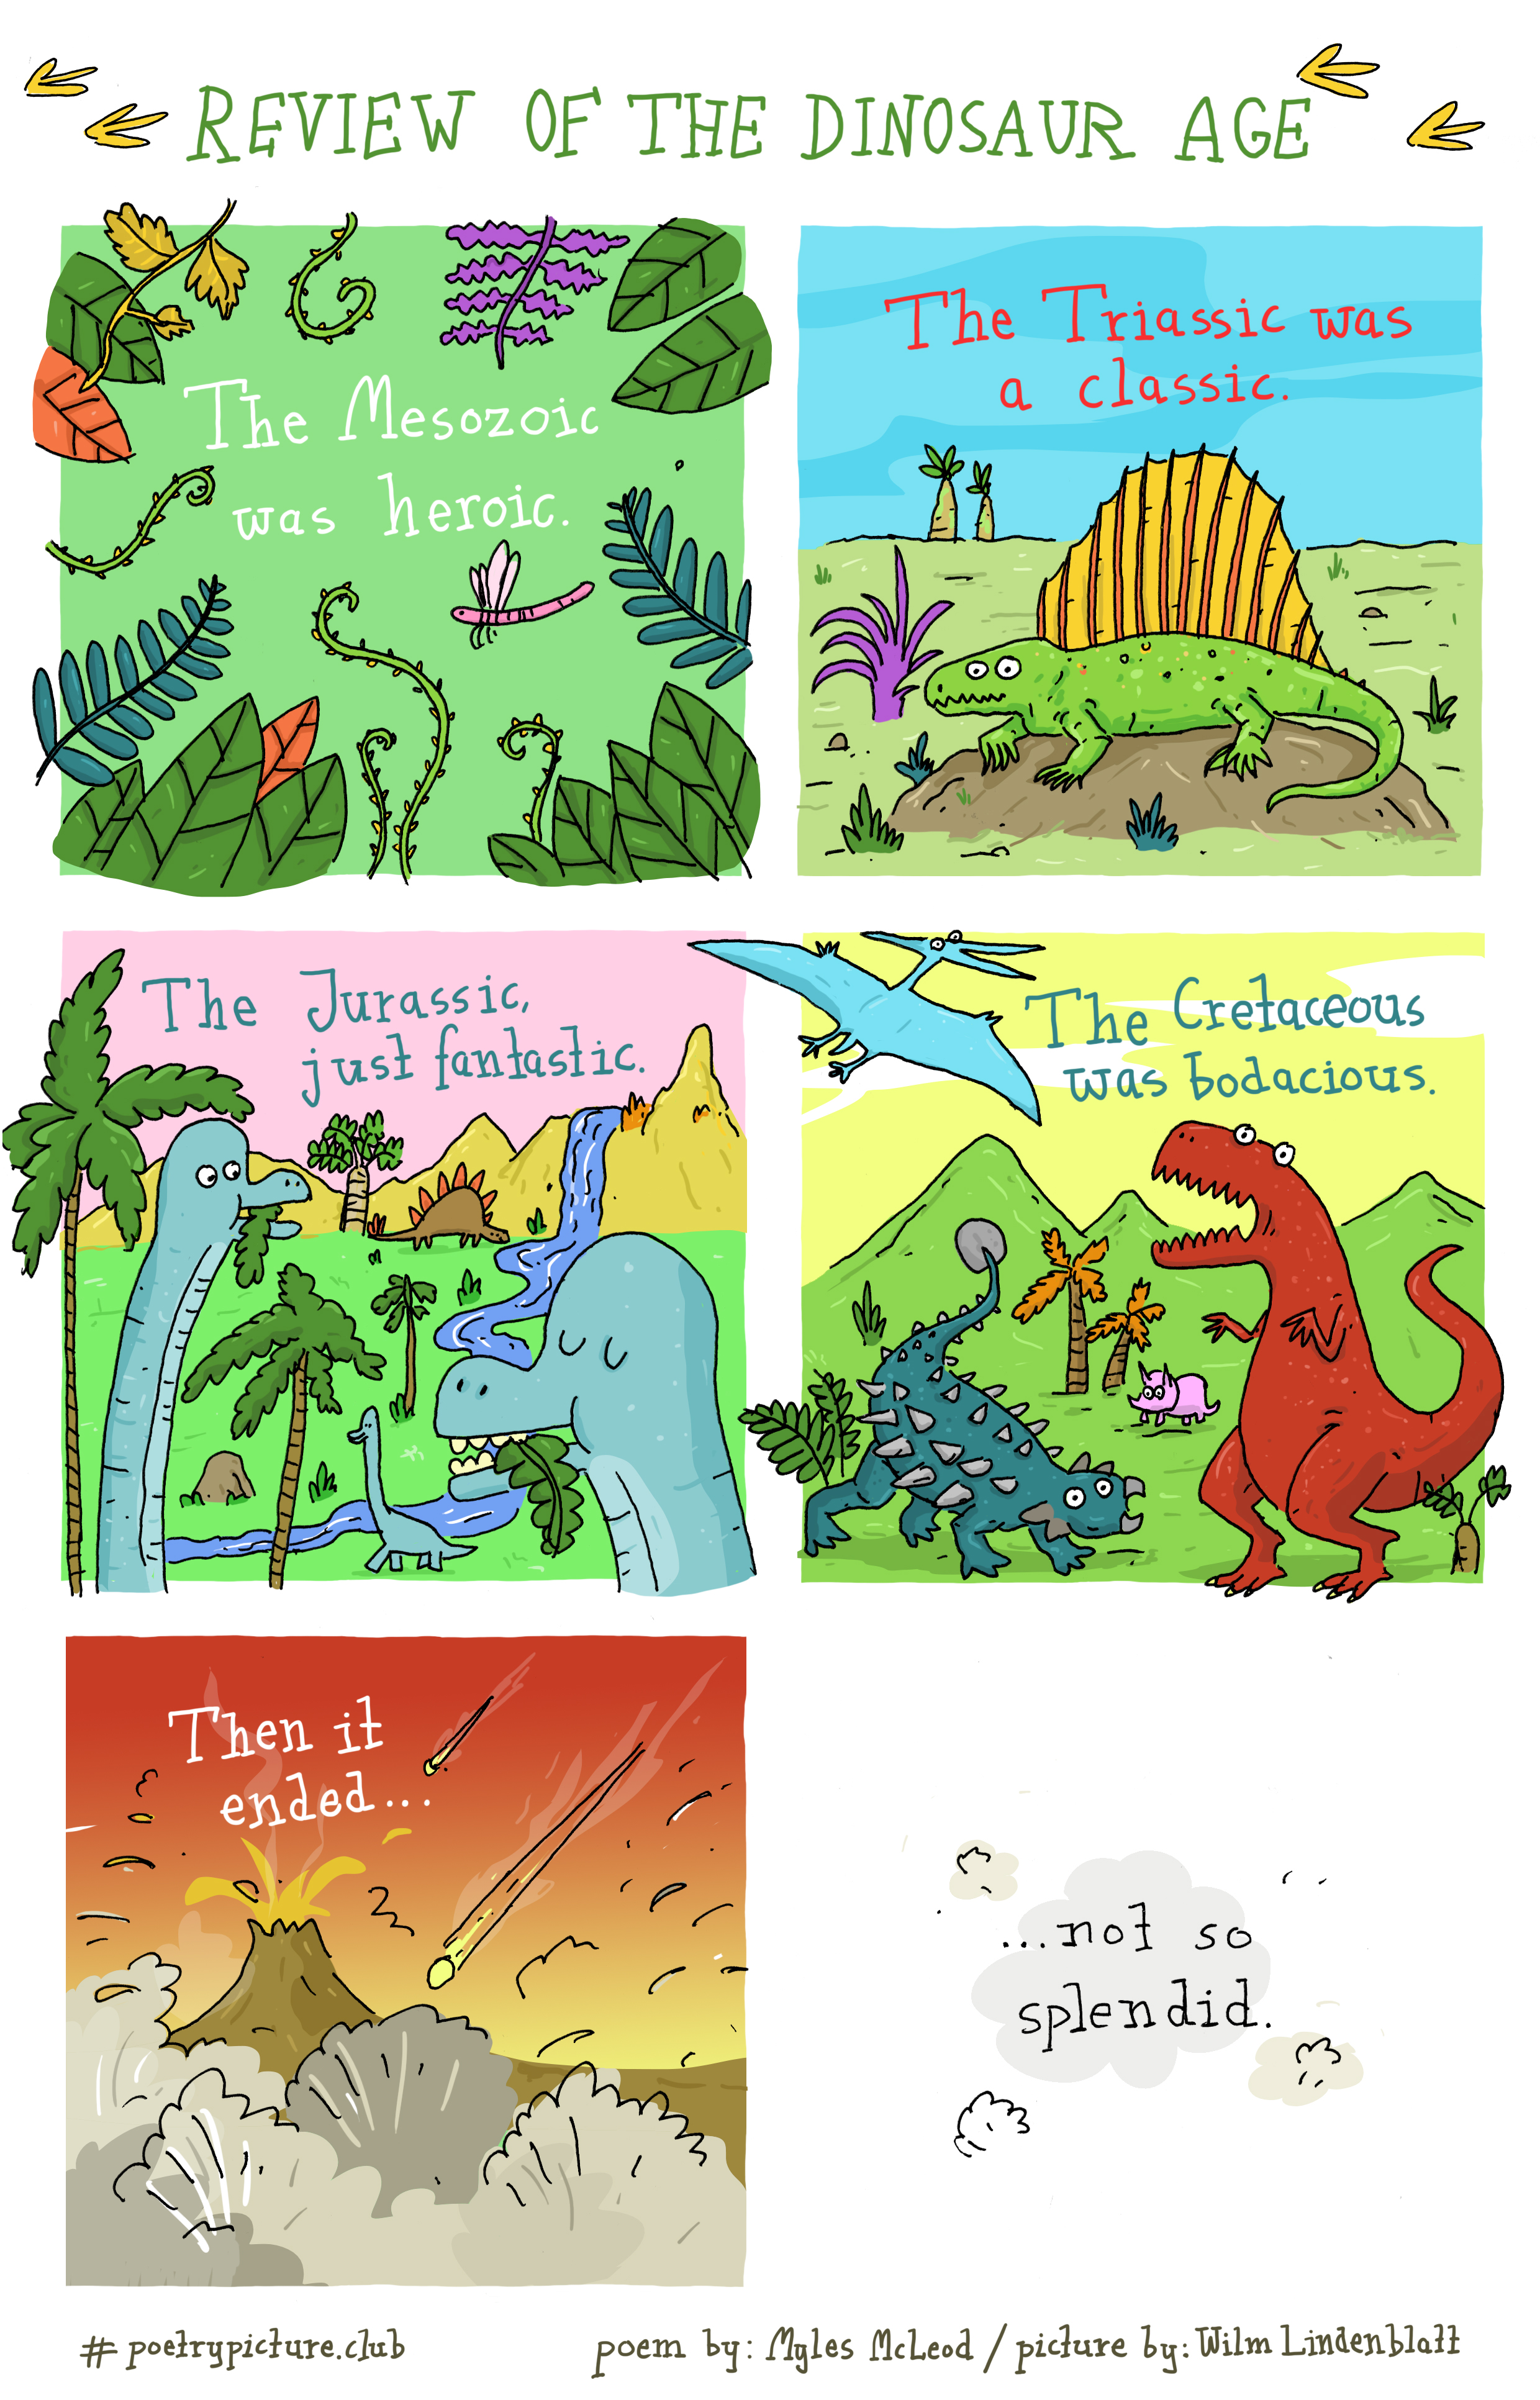 Review of the Dinosaur Age